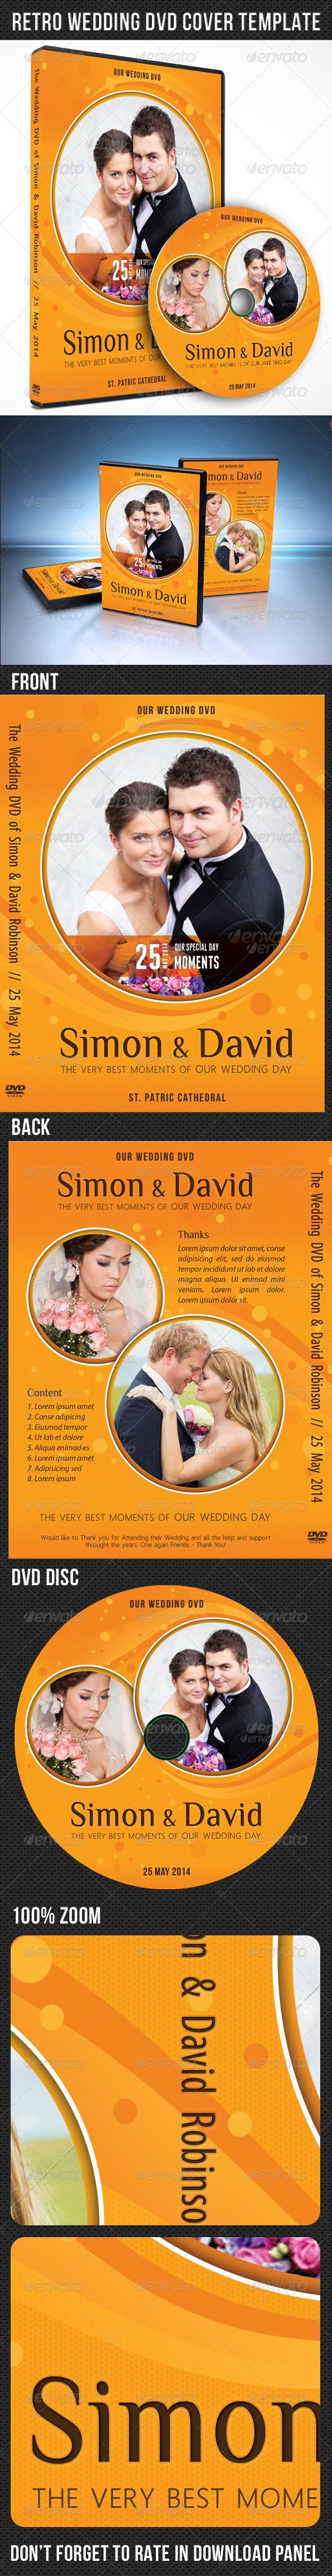 GraphicRiver Wedding DVD Cover Template 03 7631704